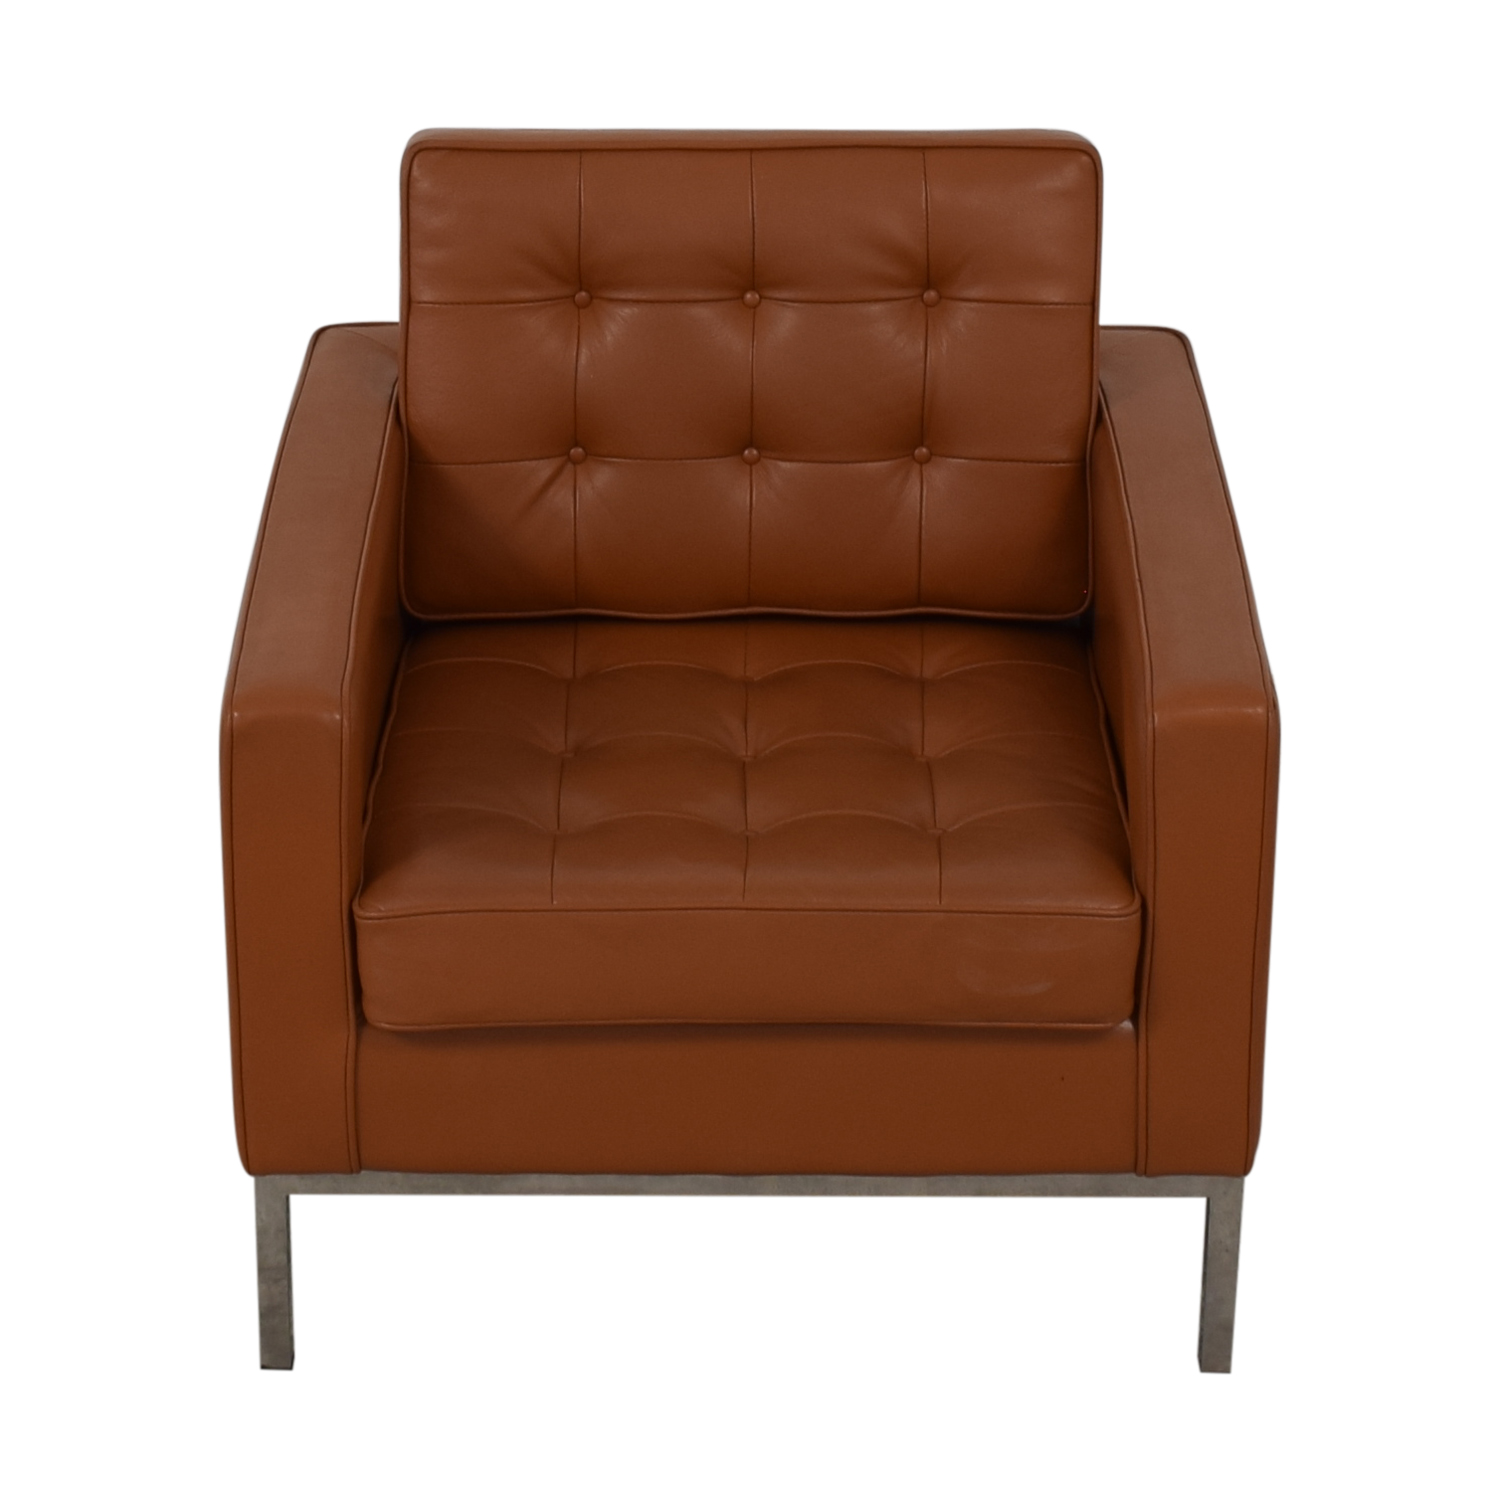 Kardiel Brown Leather Chair / Accent Chairs